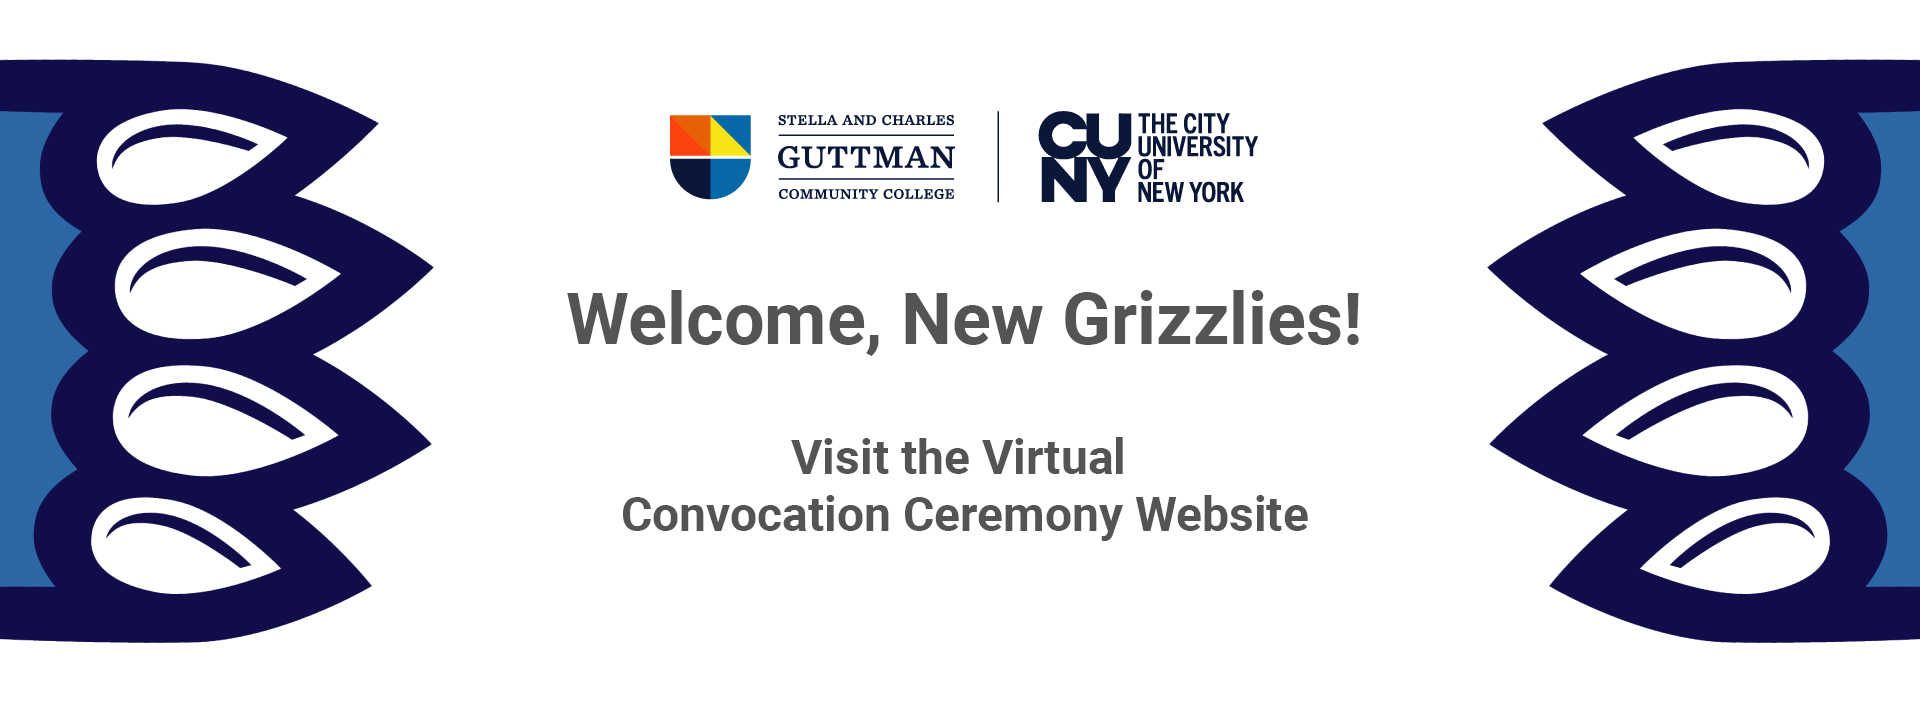 Welcome, new Grizzlies! Visit the Virtual Convocation Ceremony website